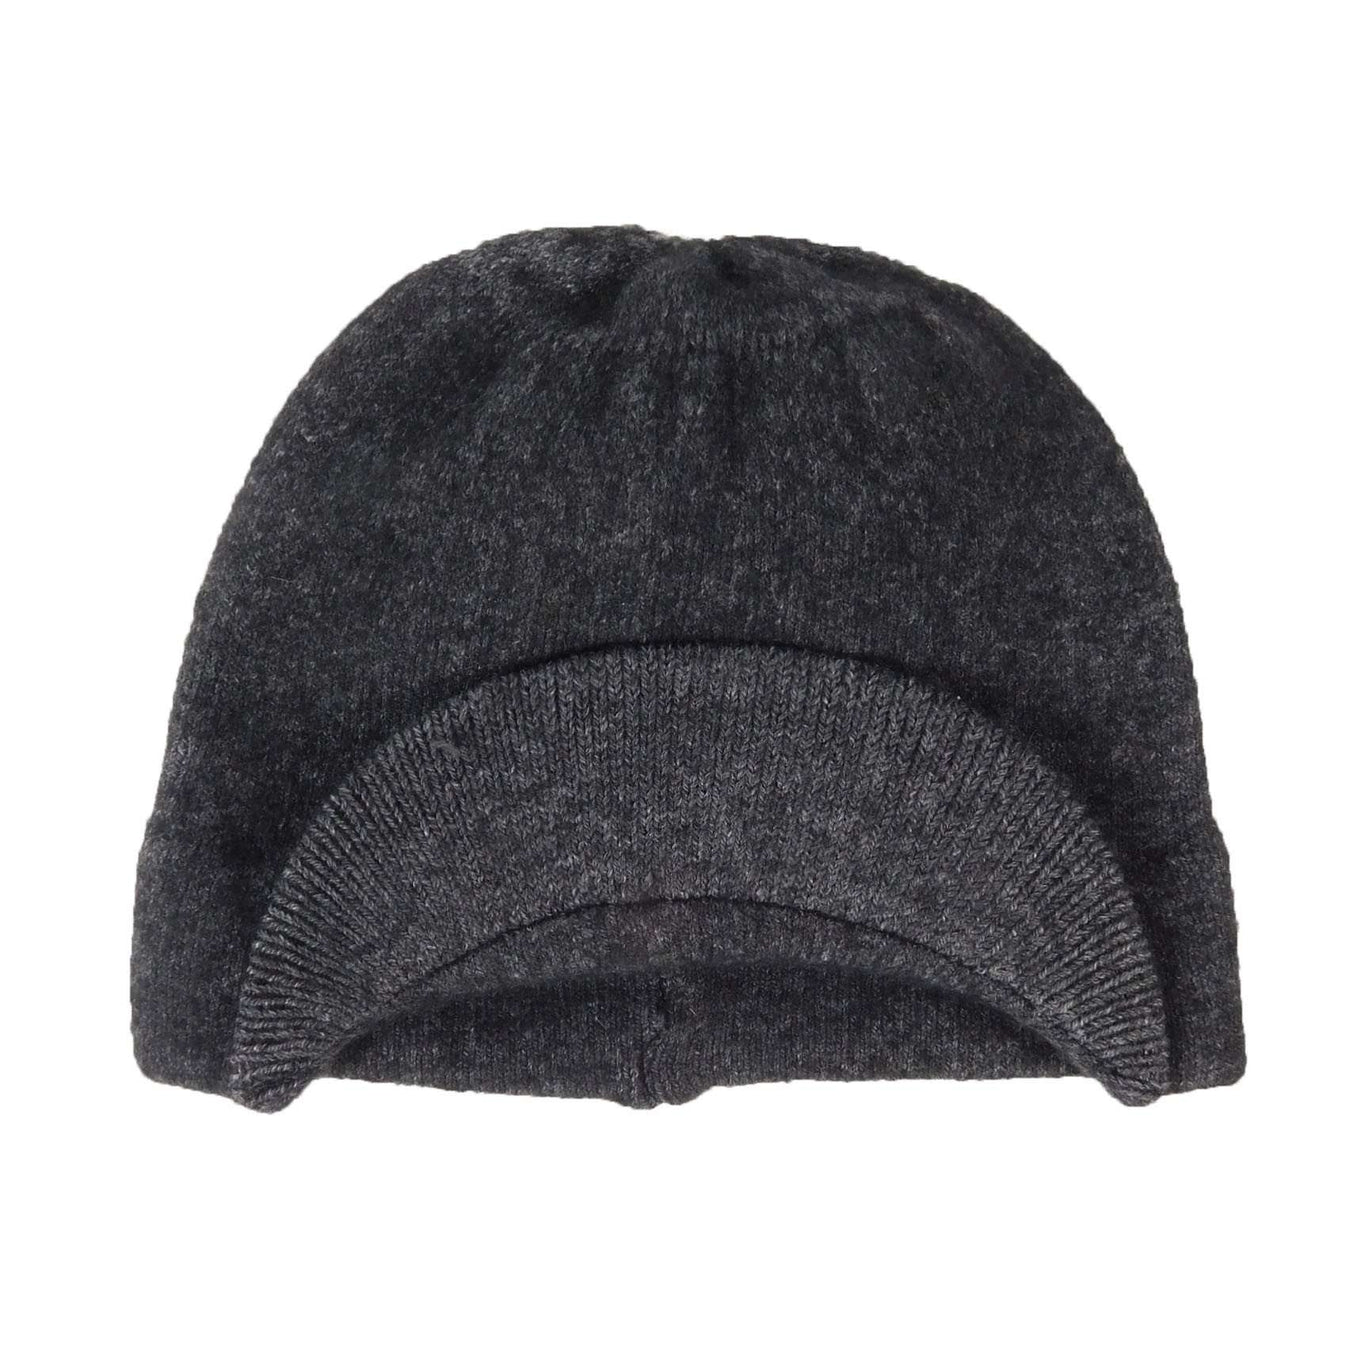 Beanies and Berets for Men